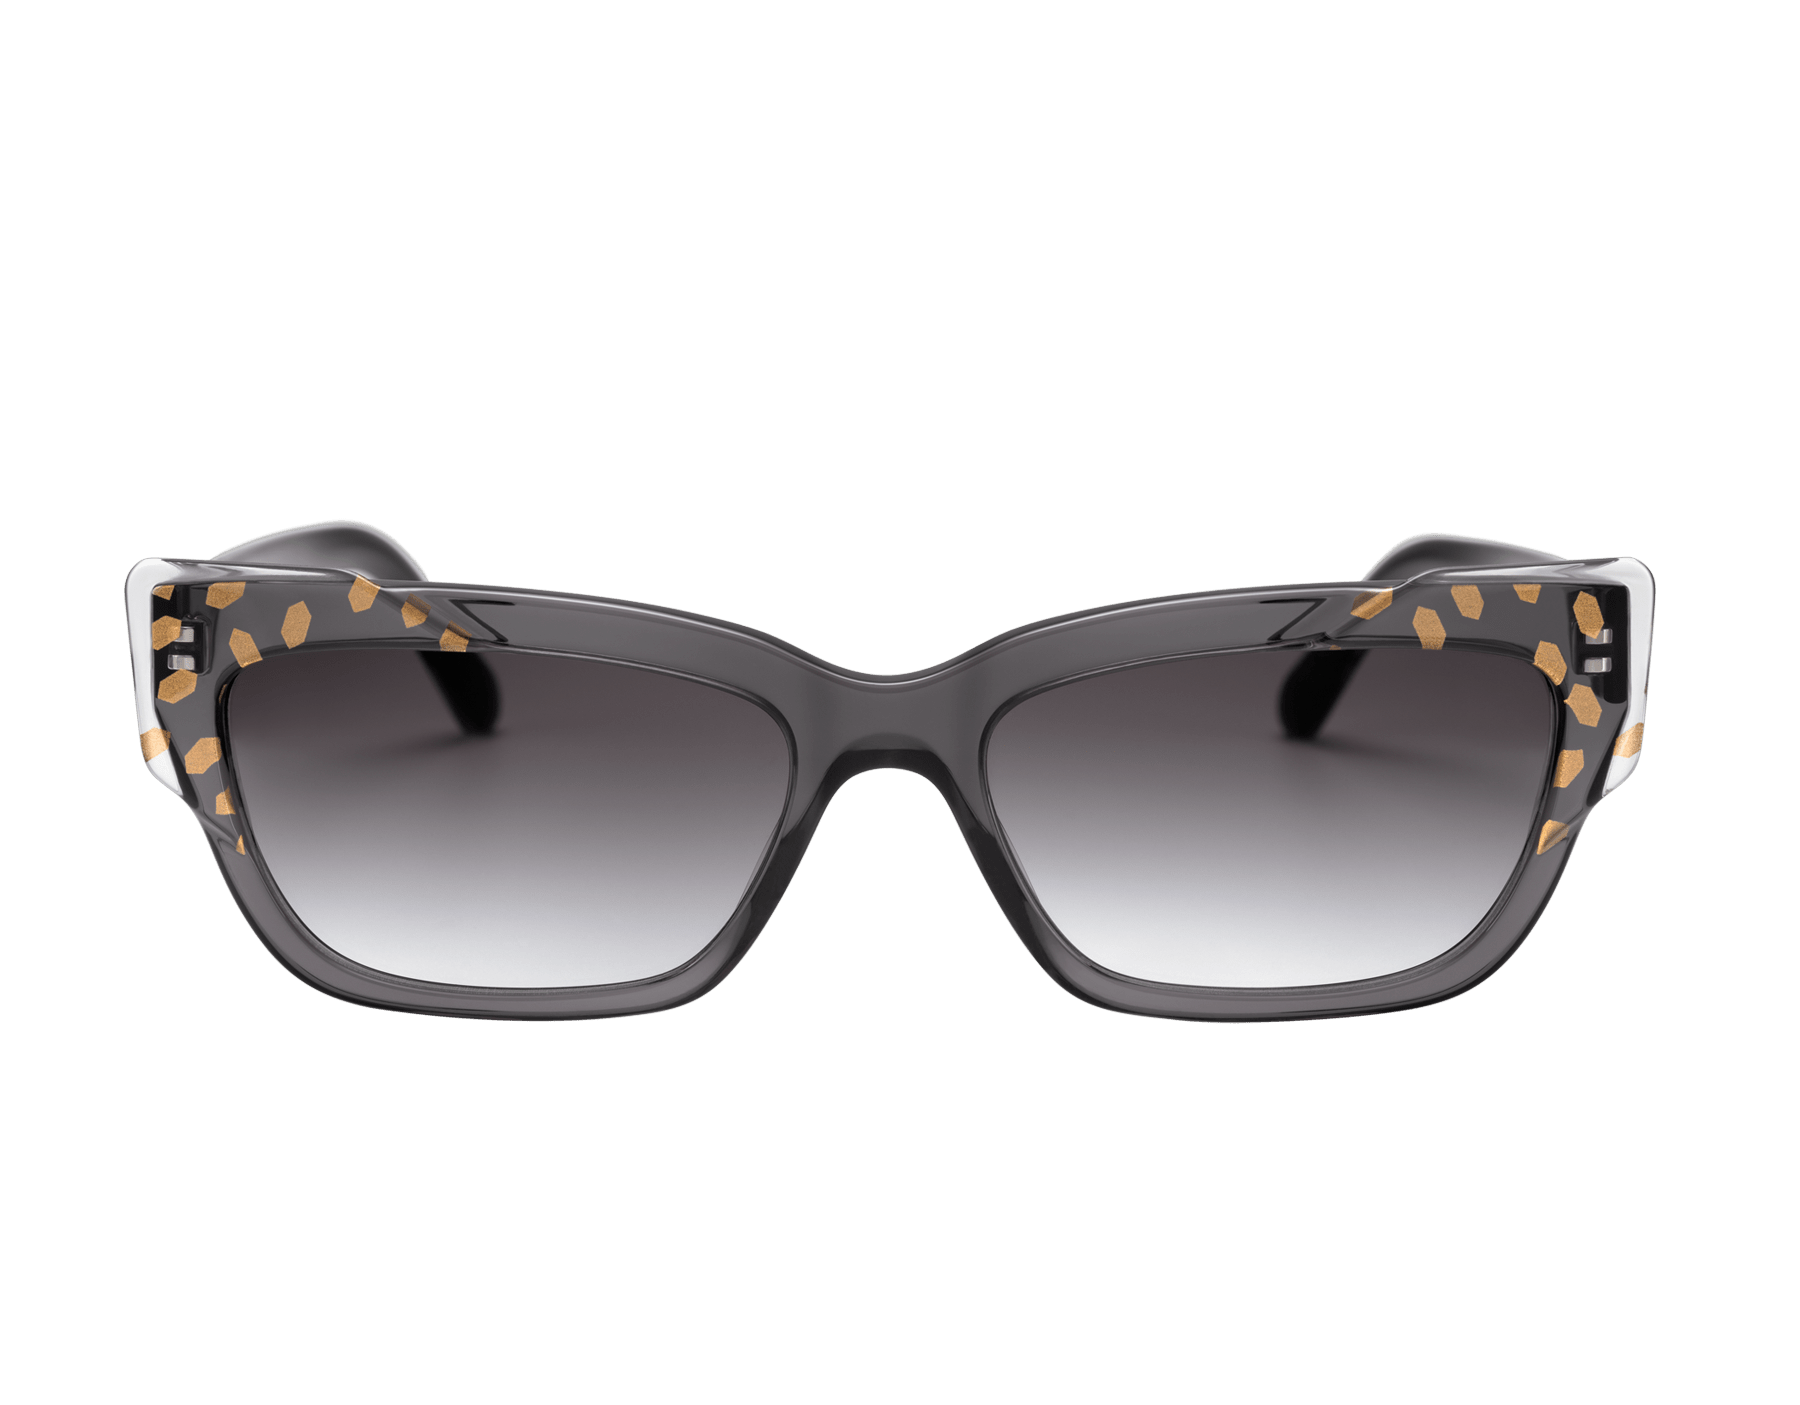 Bvlgari Serpenti Scale-blast rectangular cat-eye acetate sunglasses. 903735 image 2